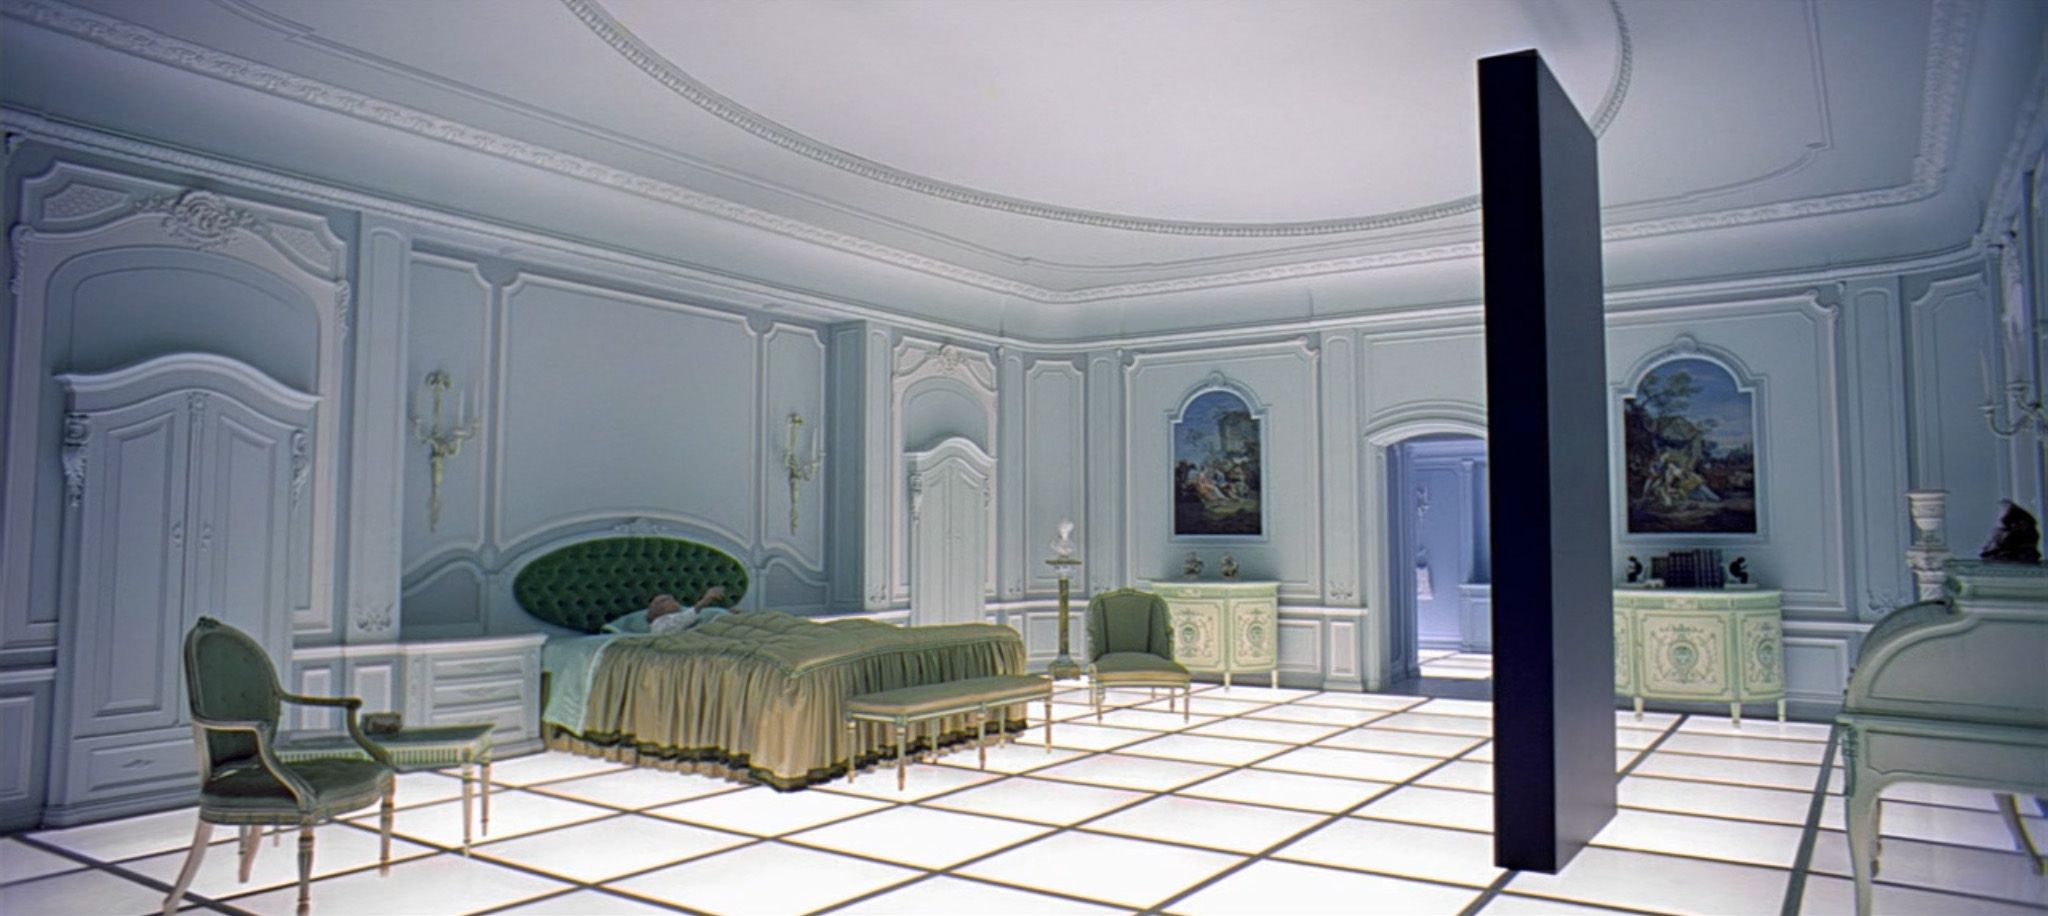 Image result for 2001 a space odyssey bedroom